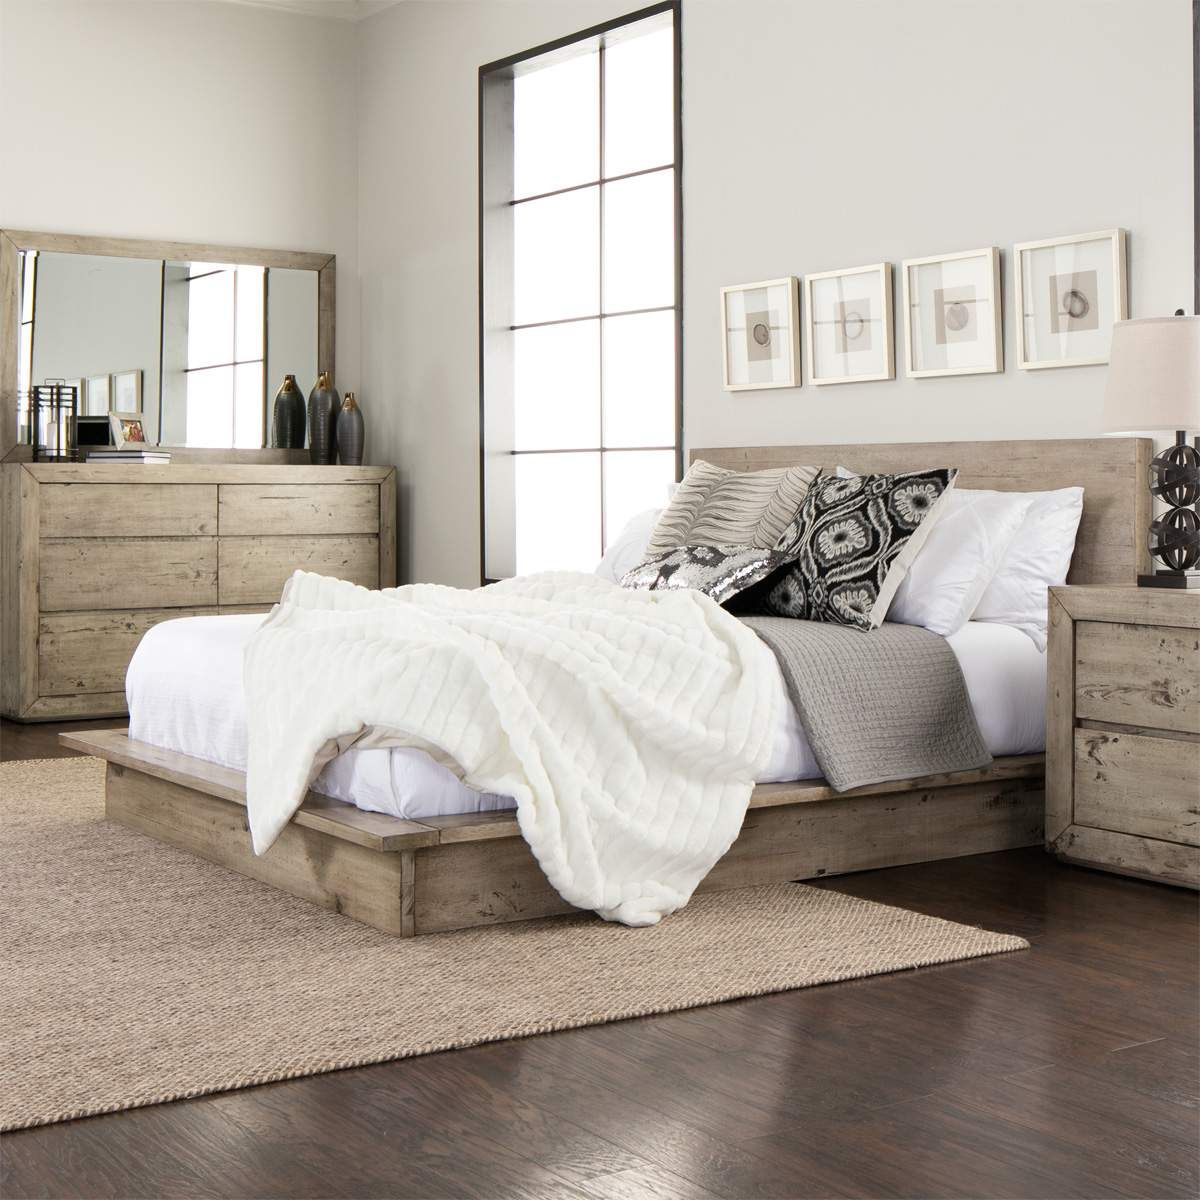 The Midtown Solid Wood Grey Bedroom Set Will Bring Modern Charm And Harmony To Your Master Retreat With I Grey Bedroom Set Wood Bedroom Sets Home Decor Bedroom